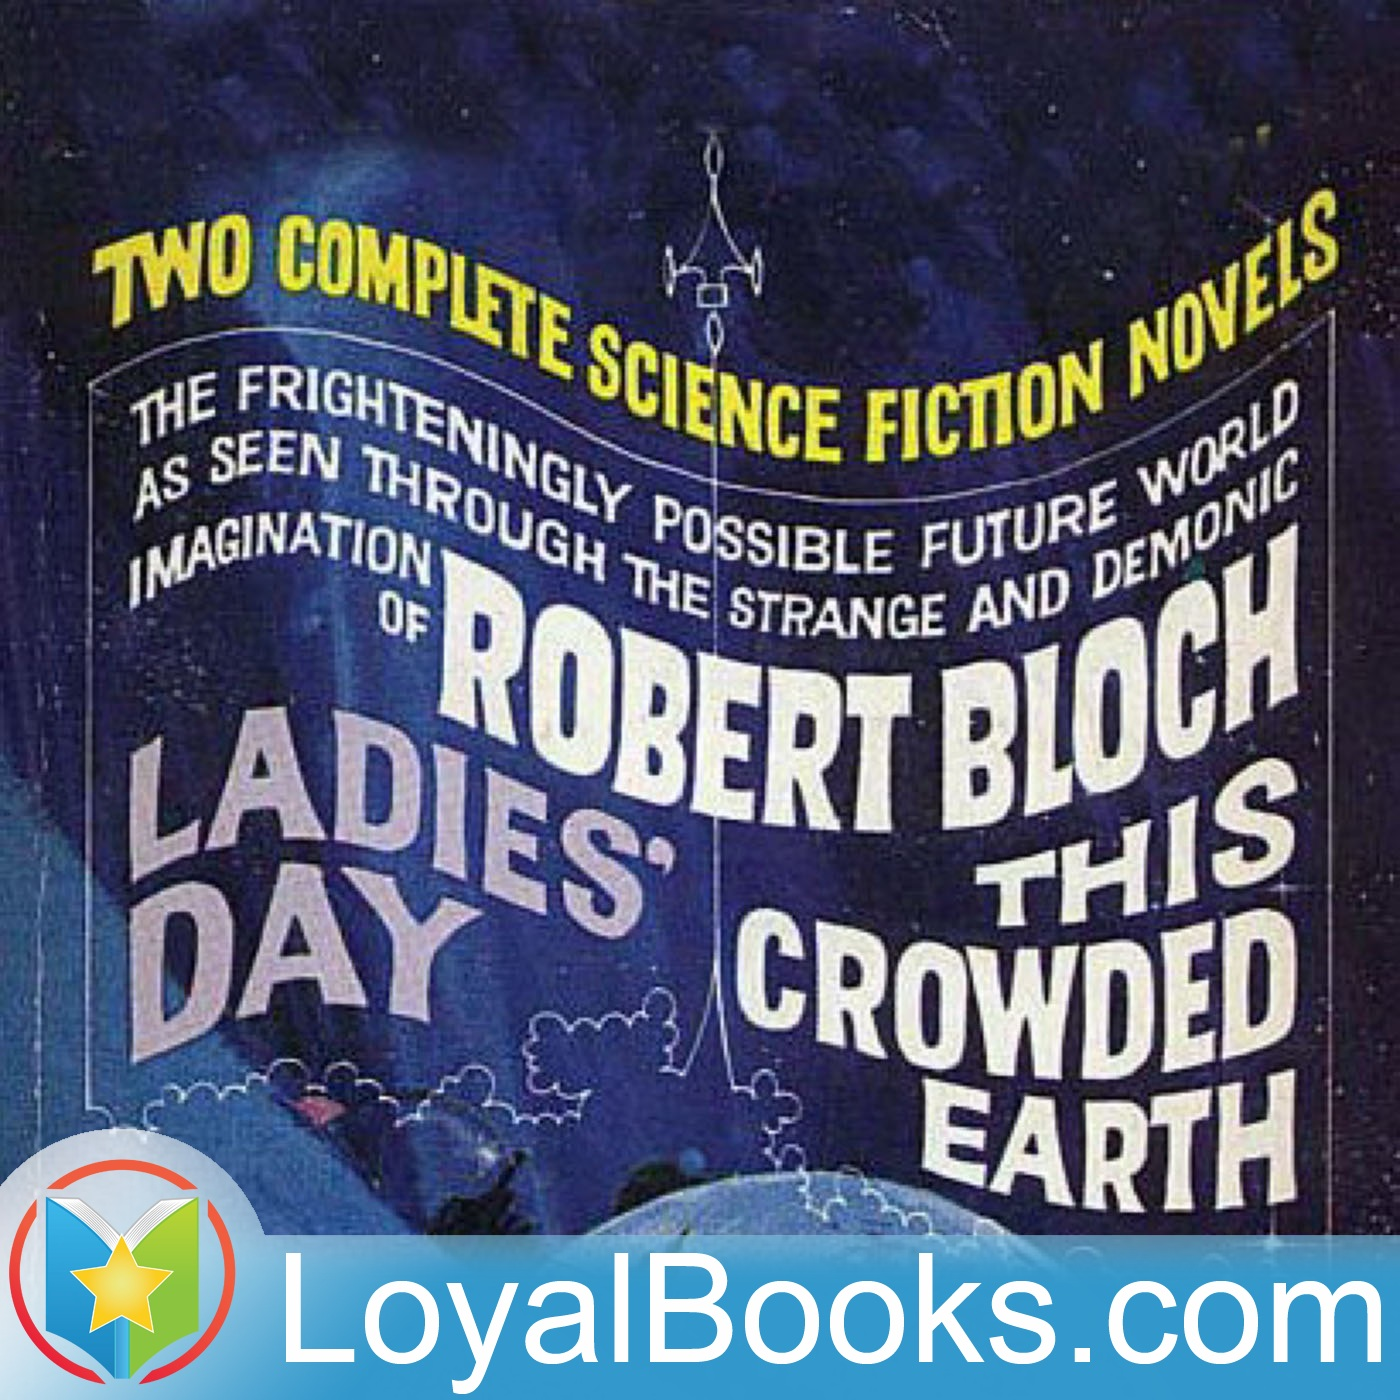 <![CDATA[This Crowded Earth by Robert Bloch]]>